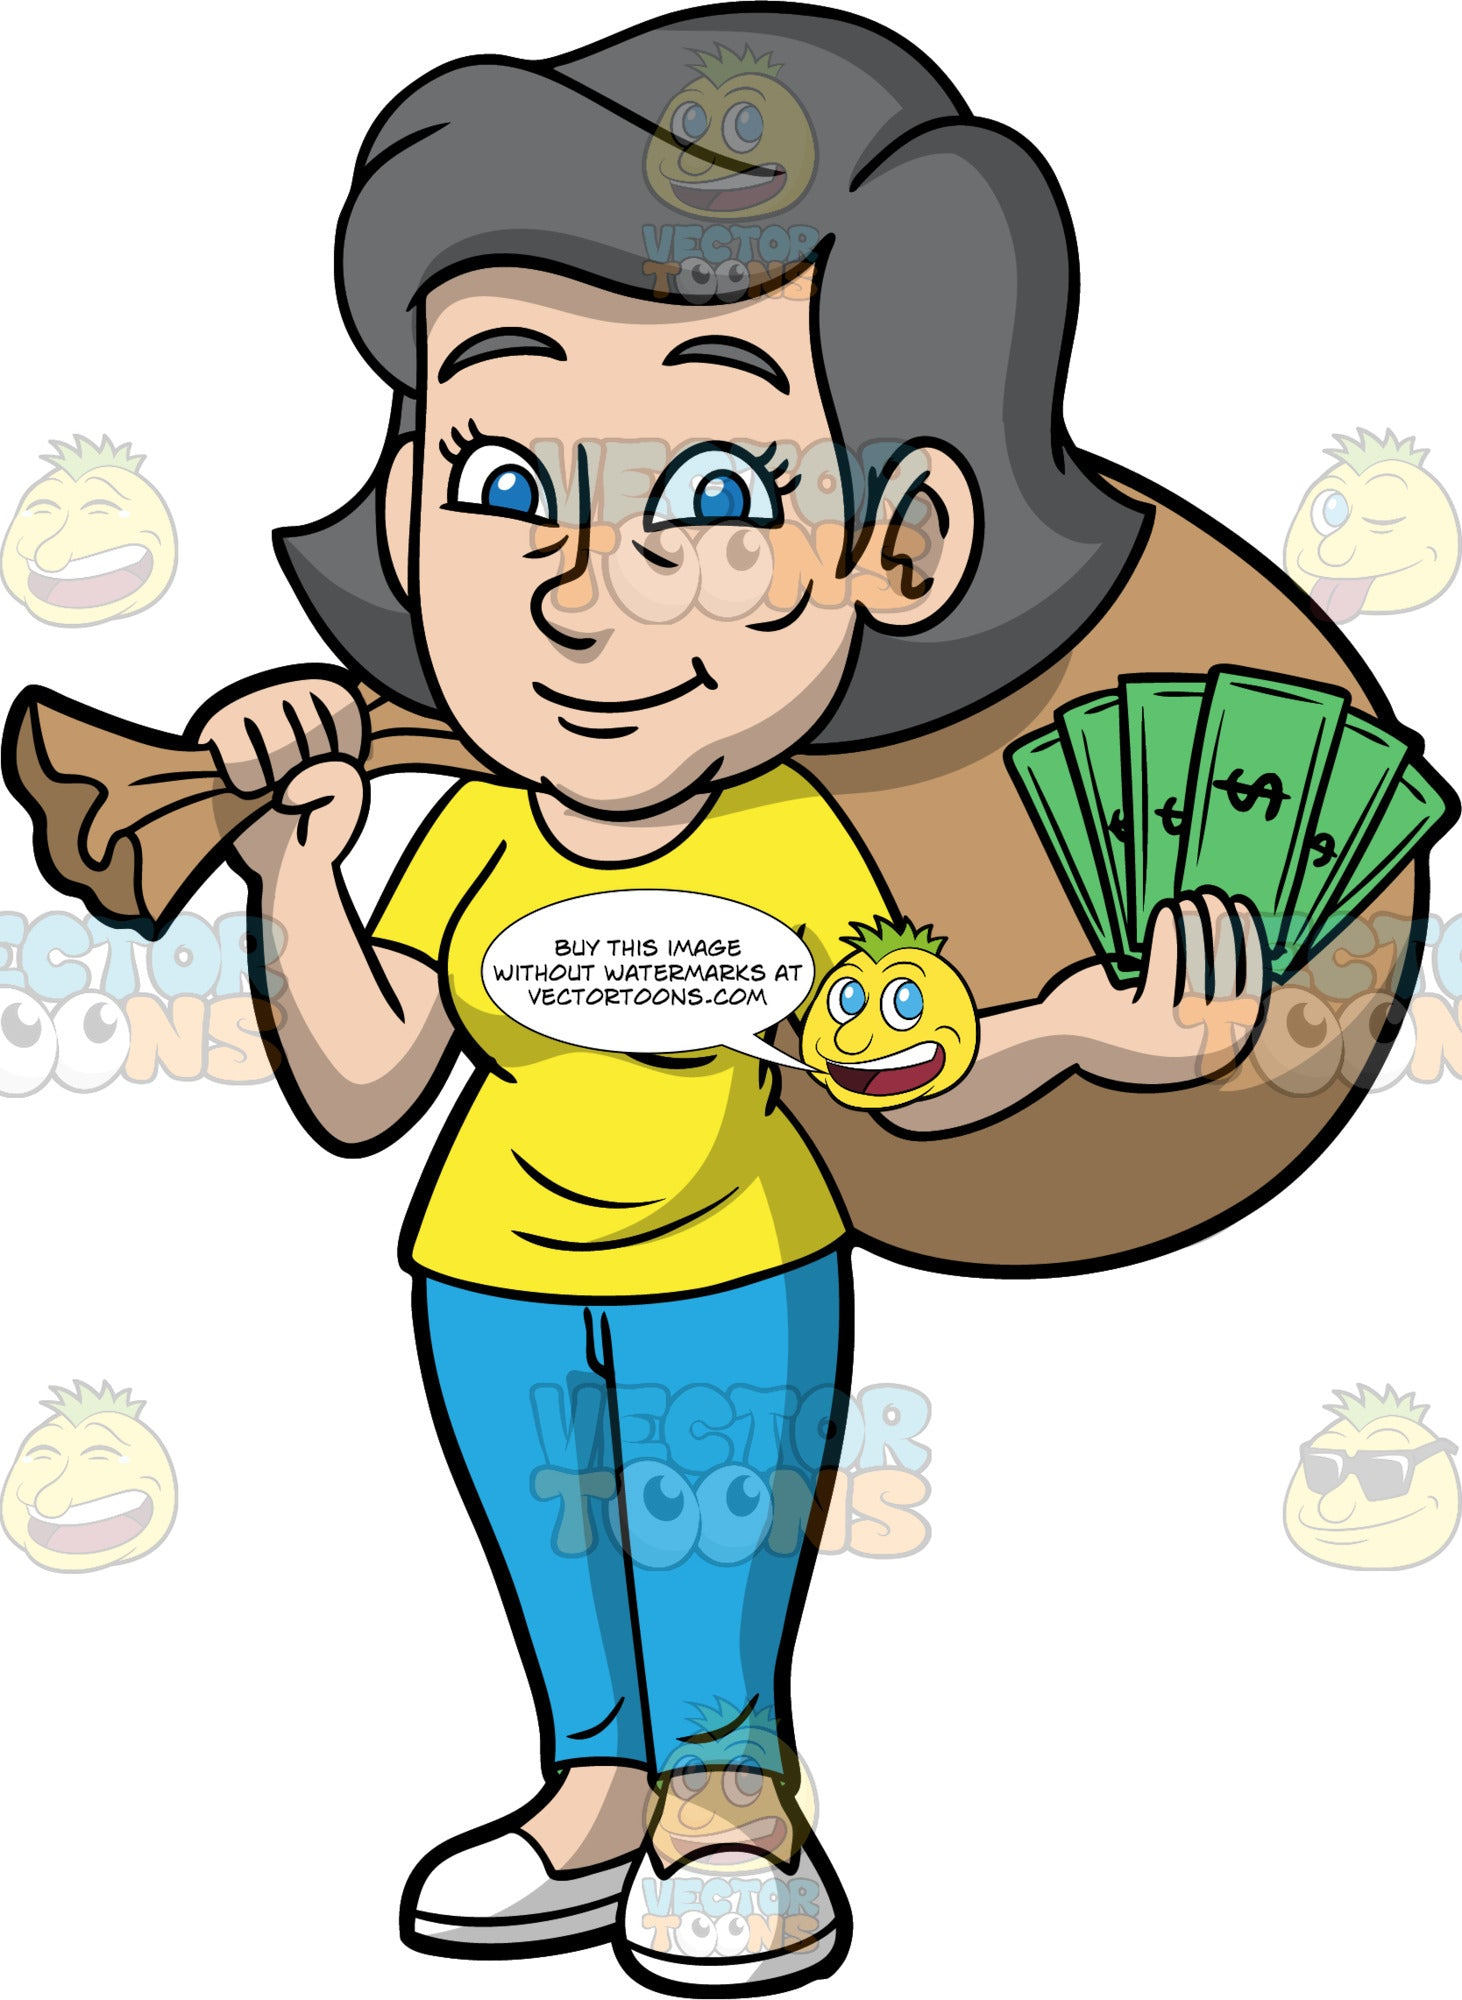 Mary Holding A Sack Of Money Over Her Shoulder. A mature woman wearing blue pants, a yellow t-shirt, and white shoes, holding a brown bag filled with money over her shoulder, and a bunch of dollar bills in her hand